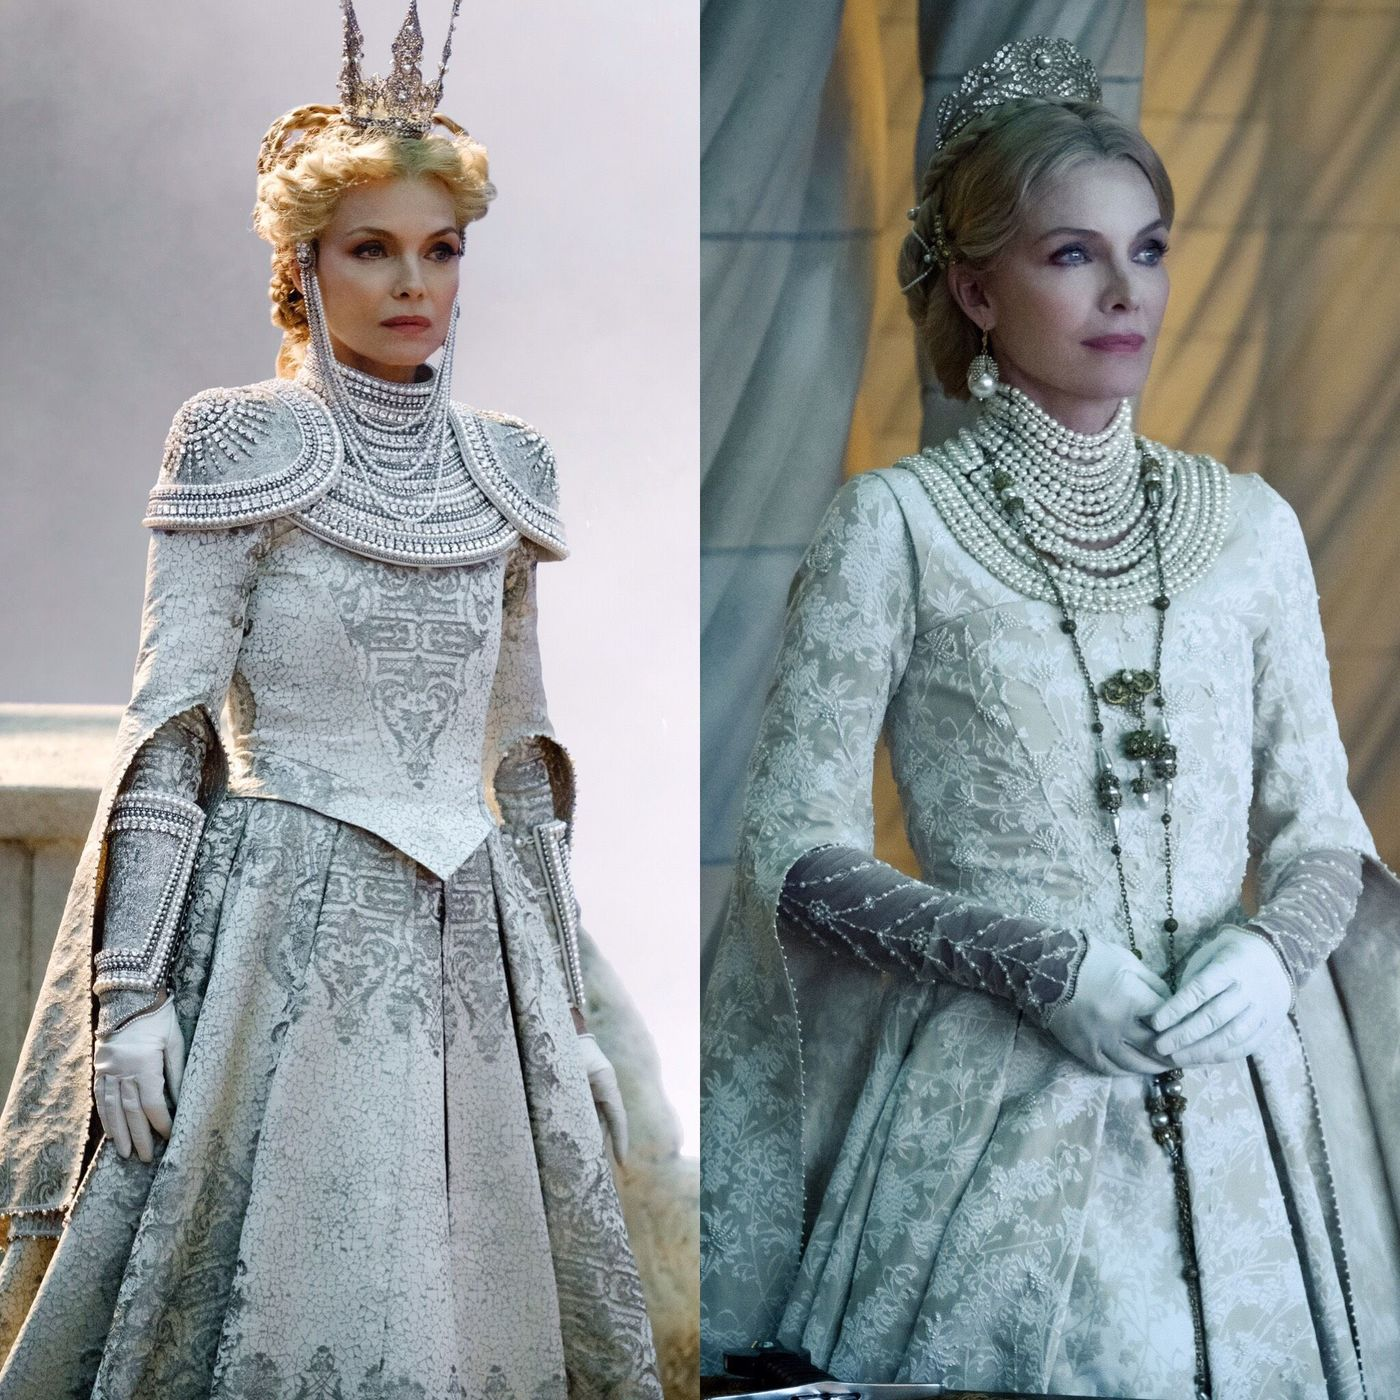 Ellen Mirojnick On Creating The Costumes For Maleficent